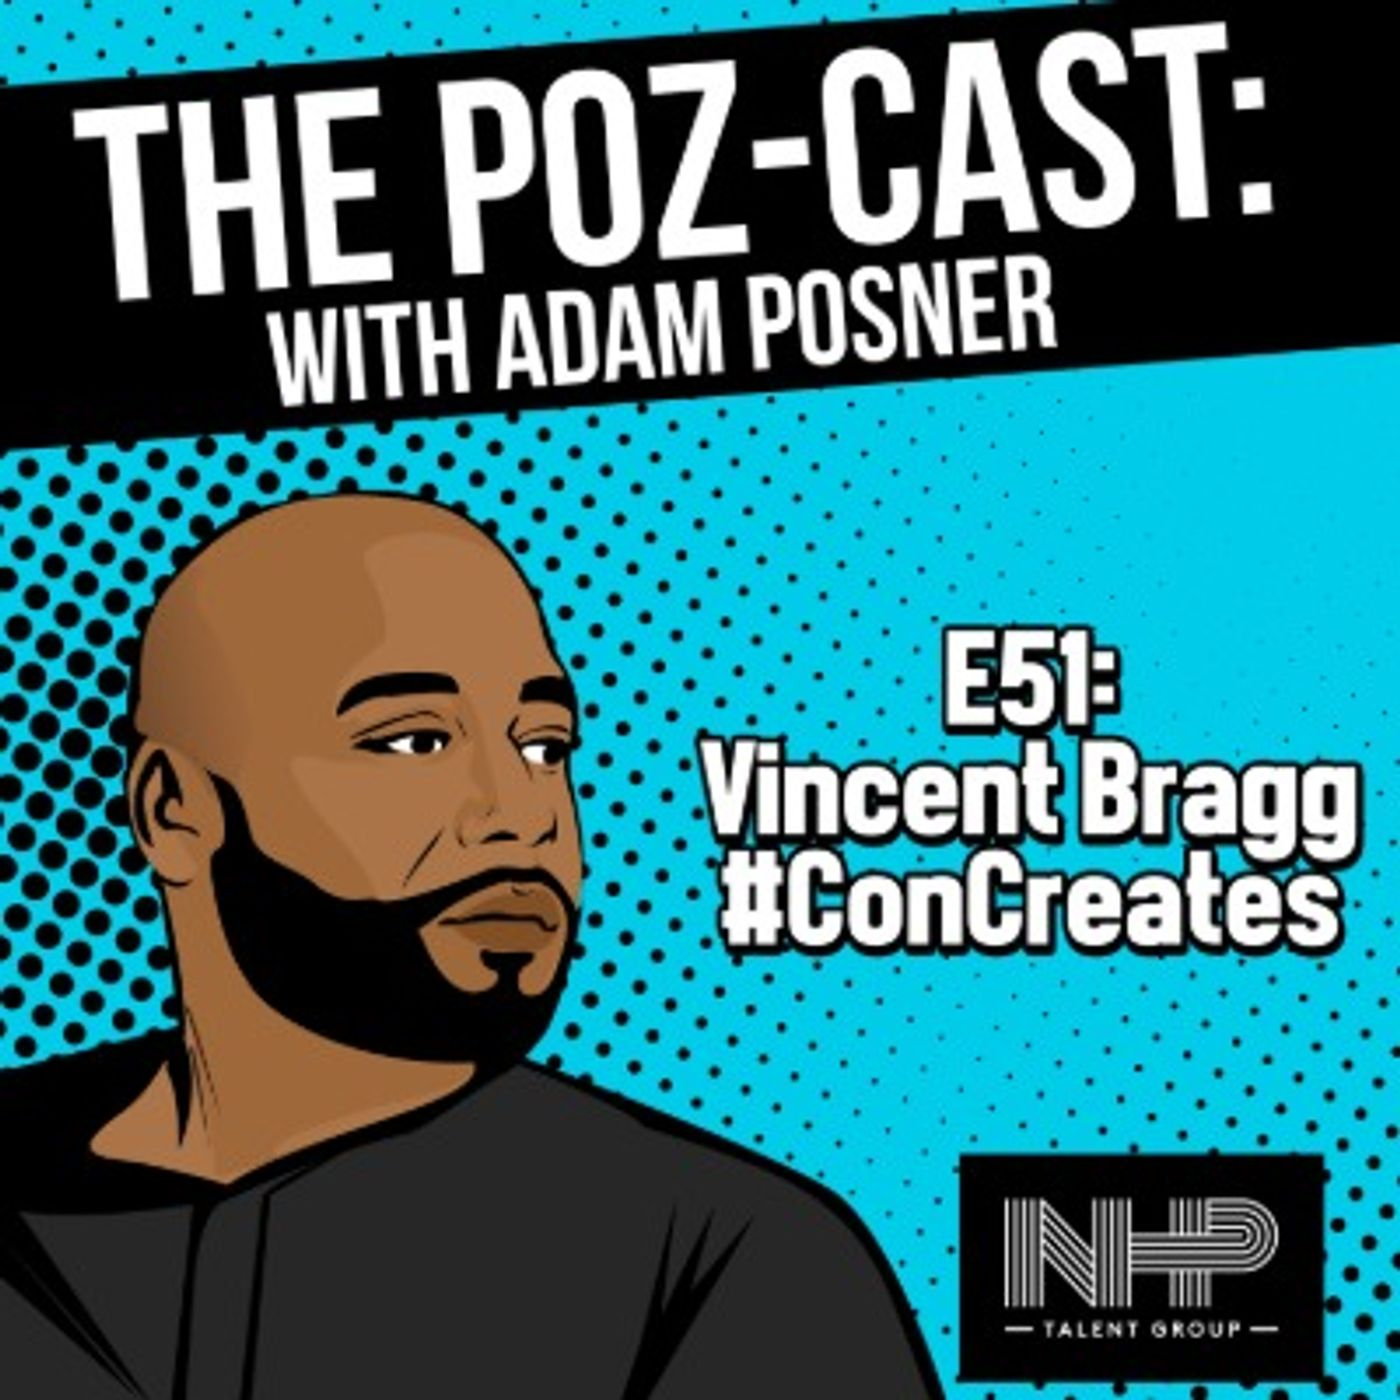 BEST OF #thePOZCAST E51: Vincent Bragg & Joe Michael Nickson: From Prison to the Ad Agency Boardroom